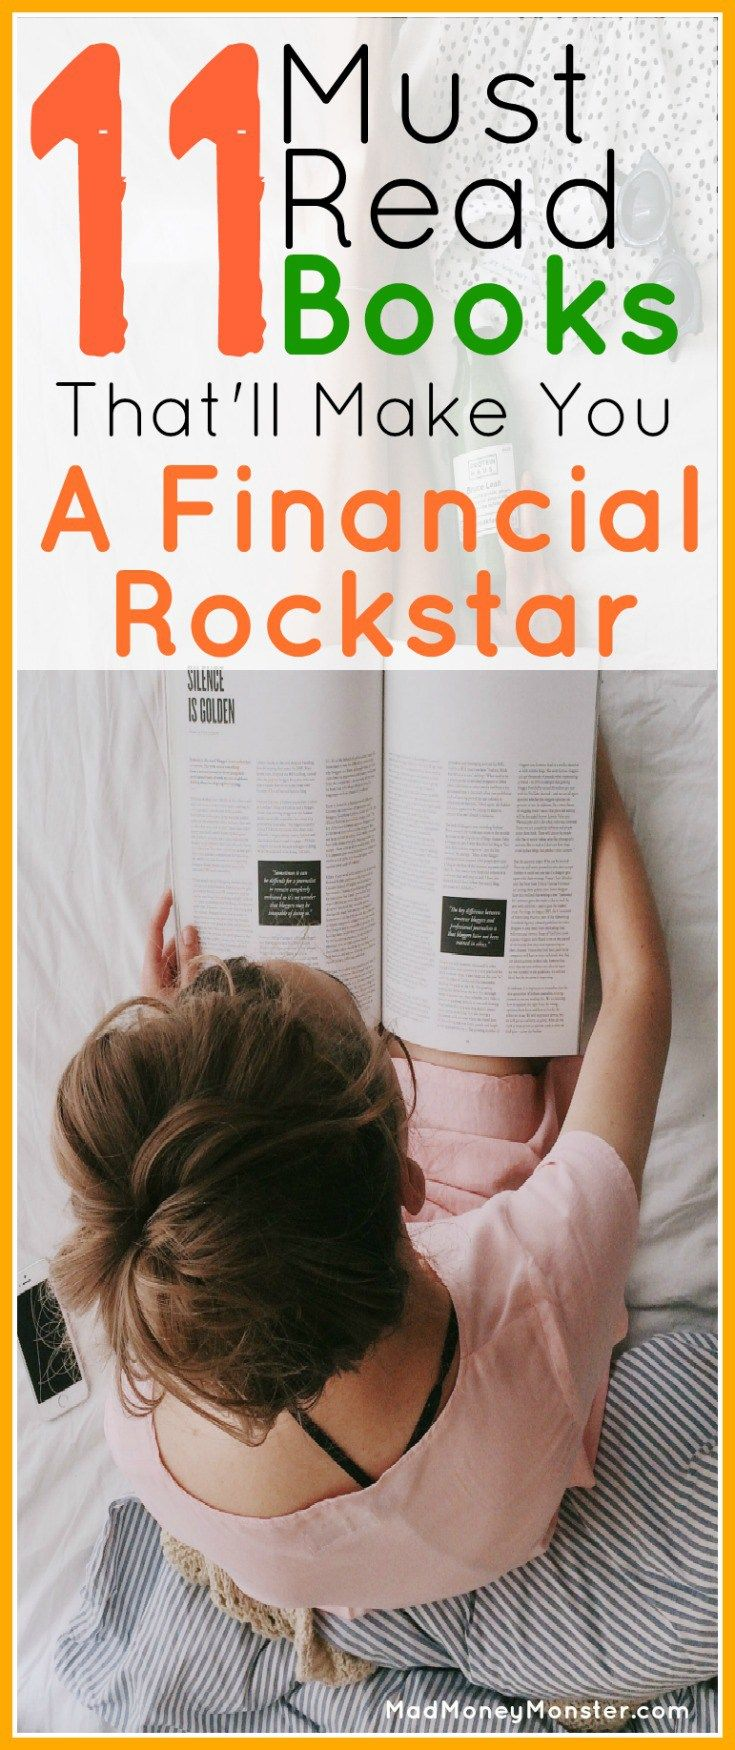 A list of 11 must-read books you can use to change your financial future. Whether you're just starting out, deep in debt, or close to financial independence, there's something on this list for you. Financial Independence | Financial Freedom | Money | Books About Money | Books About Debt | Books About Taking Control Of Money | Gifts For A Graduate | Graduation Gifts | Financial Guides via @MadMoneyMonster